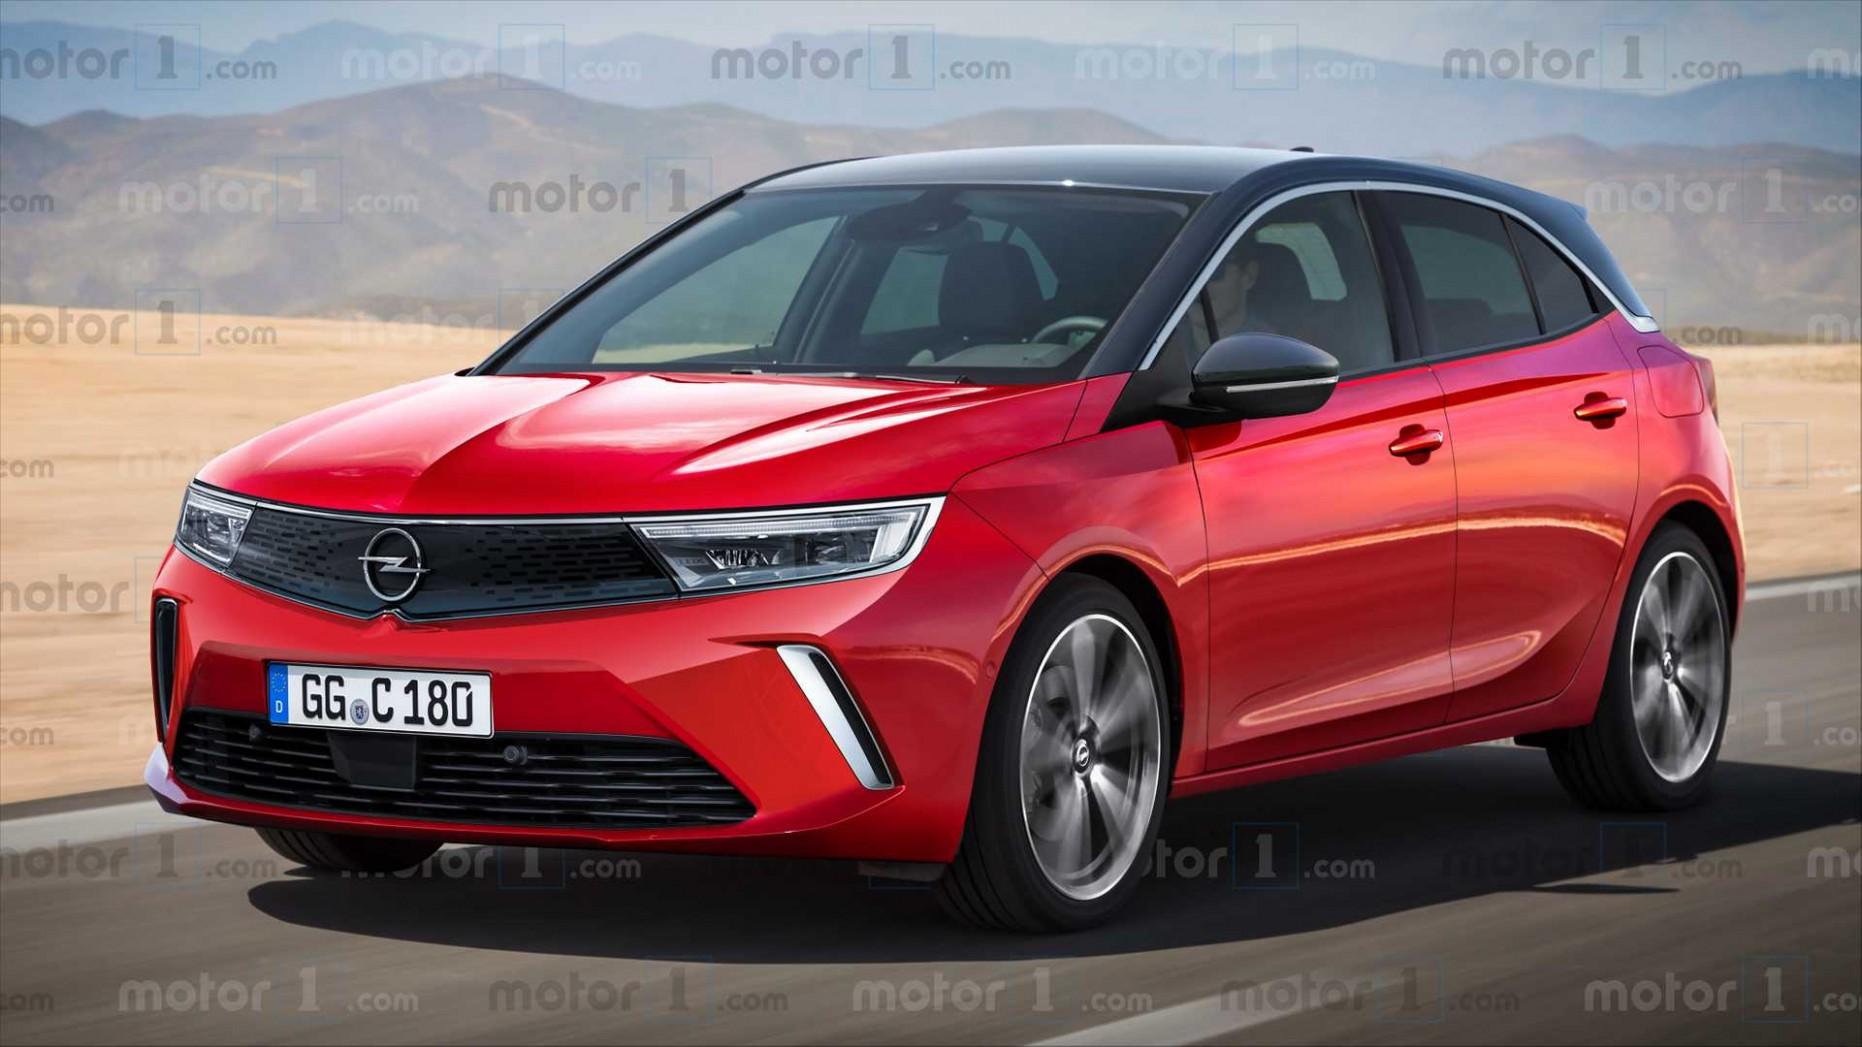 Opel Astra OPC Hot Hybrid Hatch Planned With Nearly 3 HP: Report - Opel Astra Opc 2021